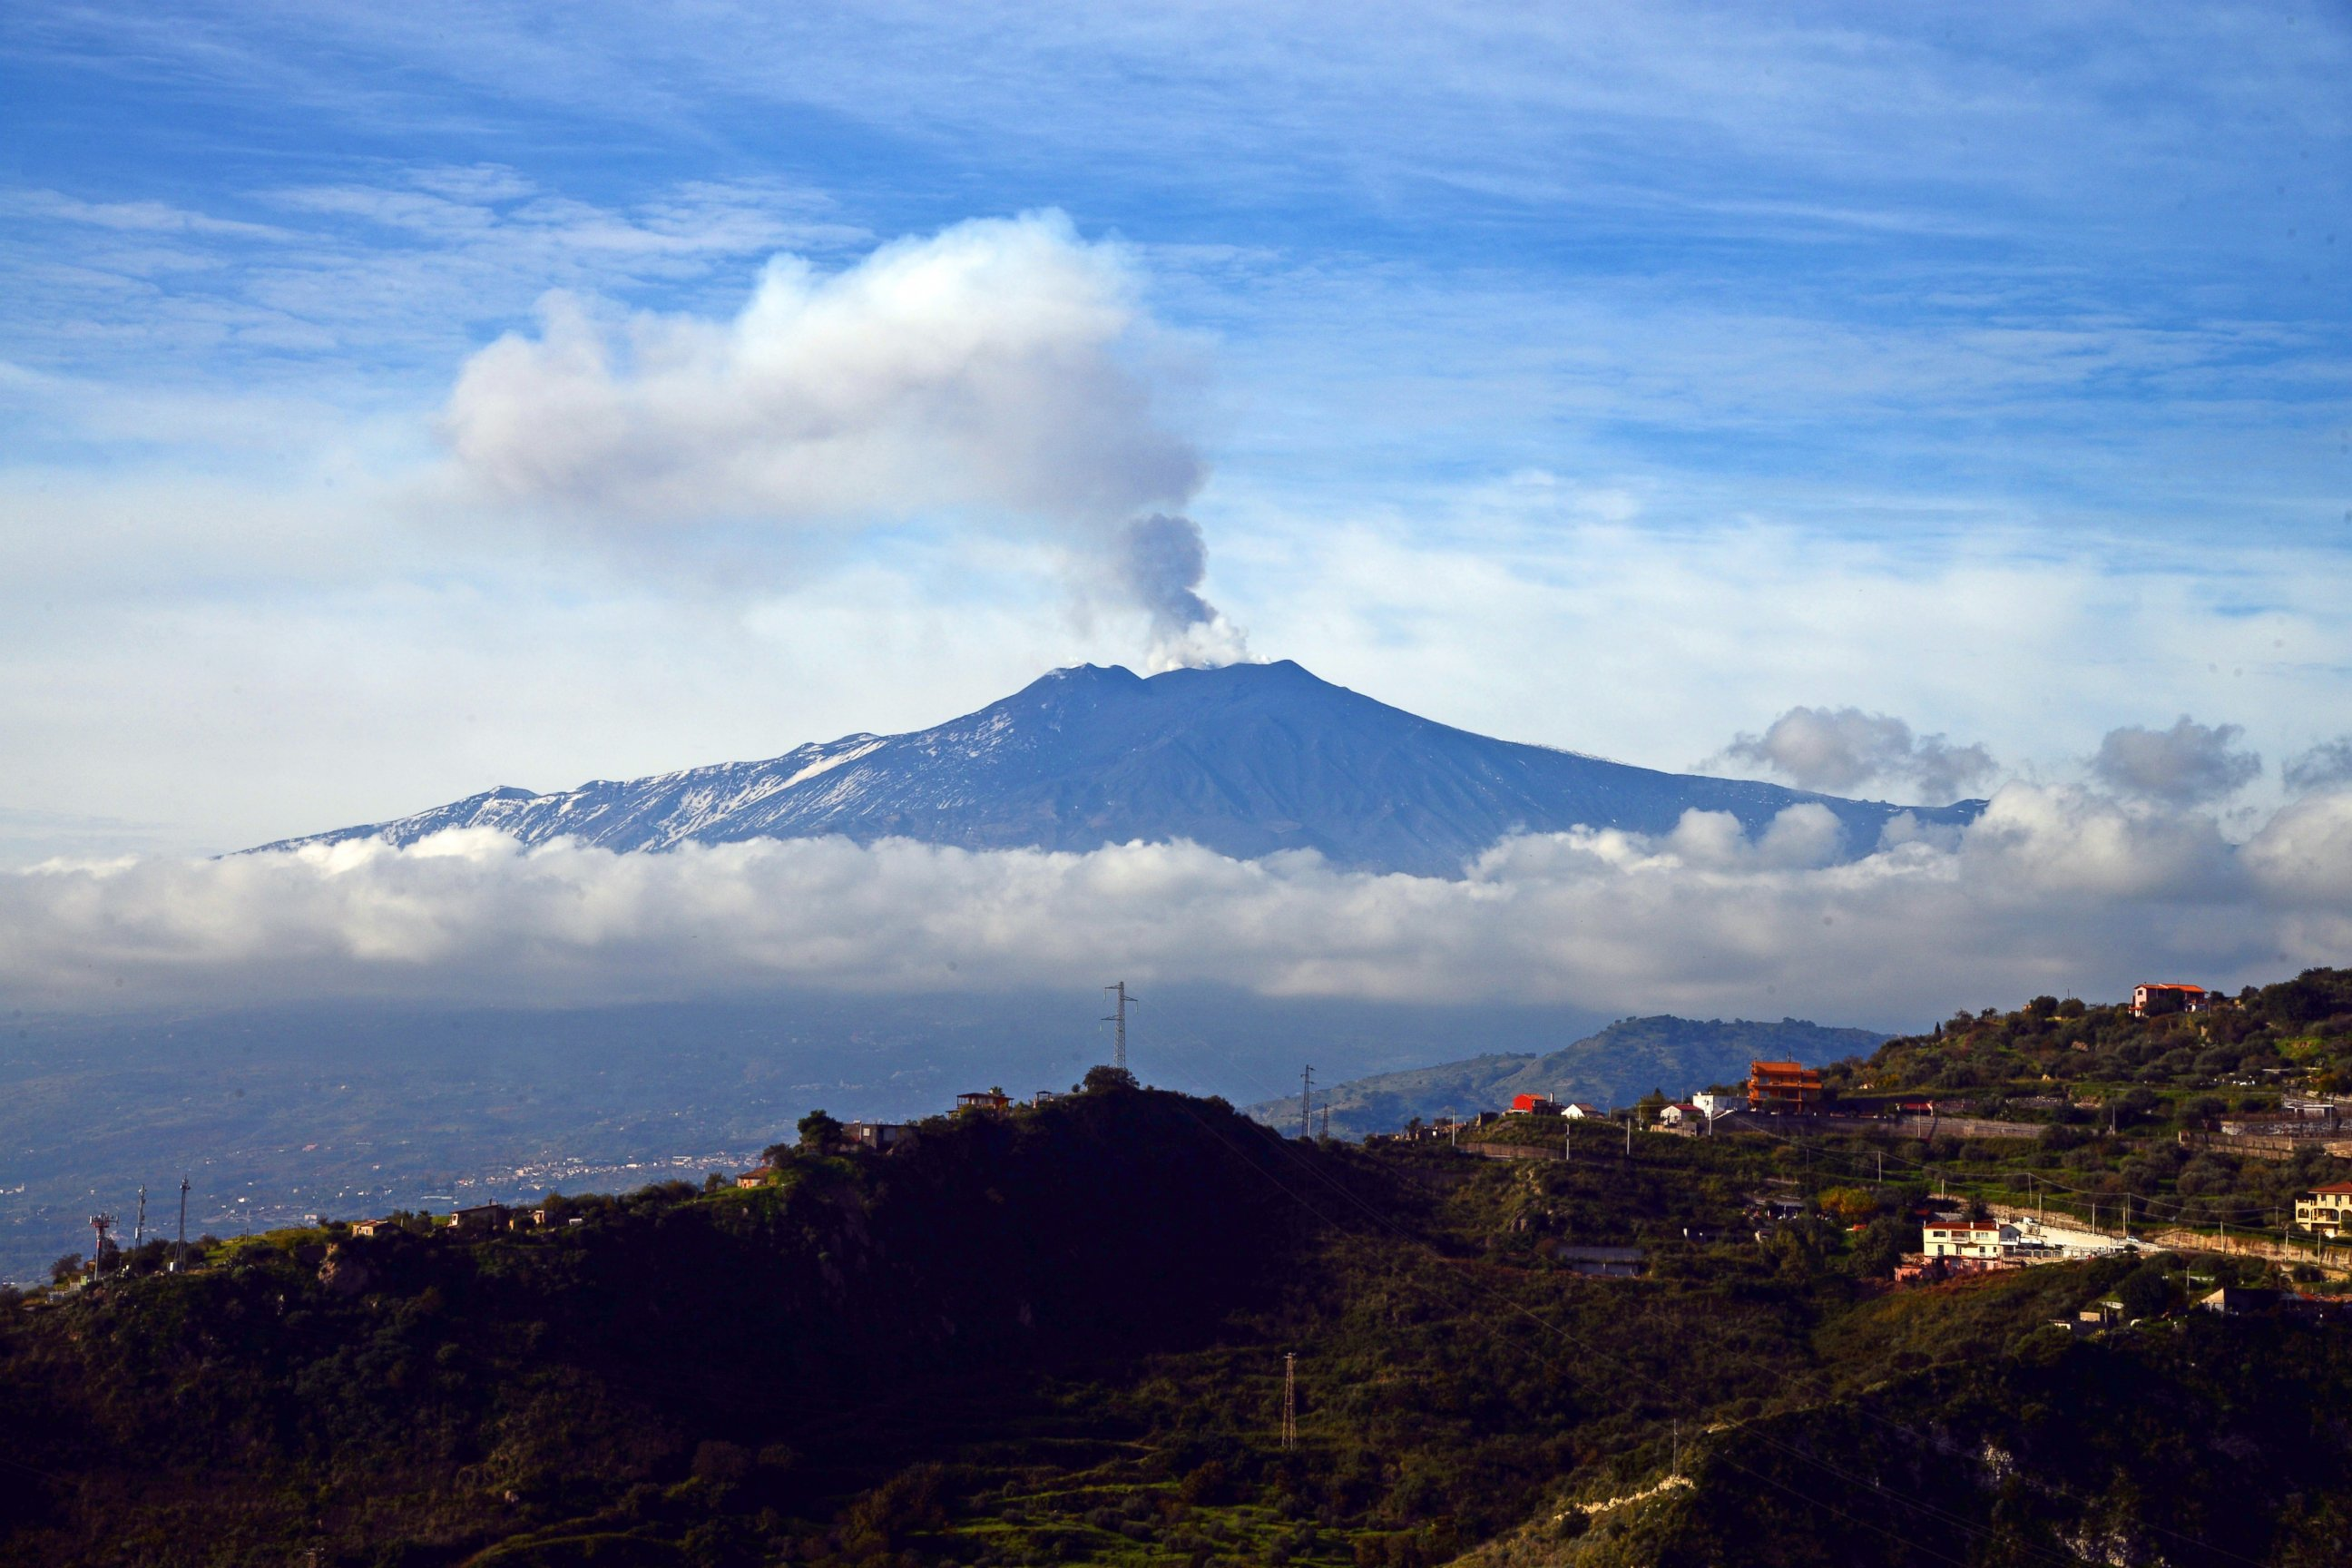 PHOTO: Smoke rises over the city of Taormina during an eruption of the Mount Etna, one of the